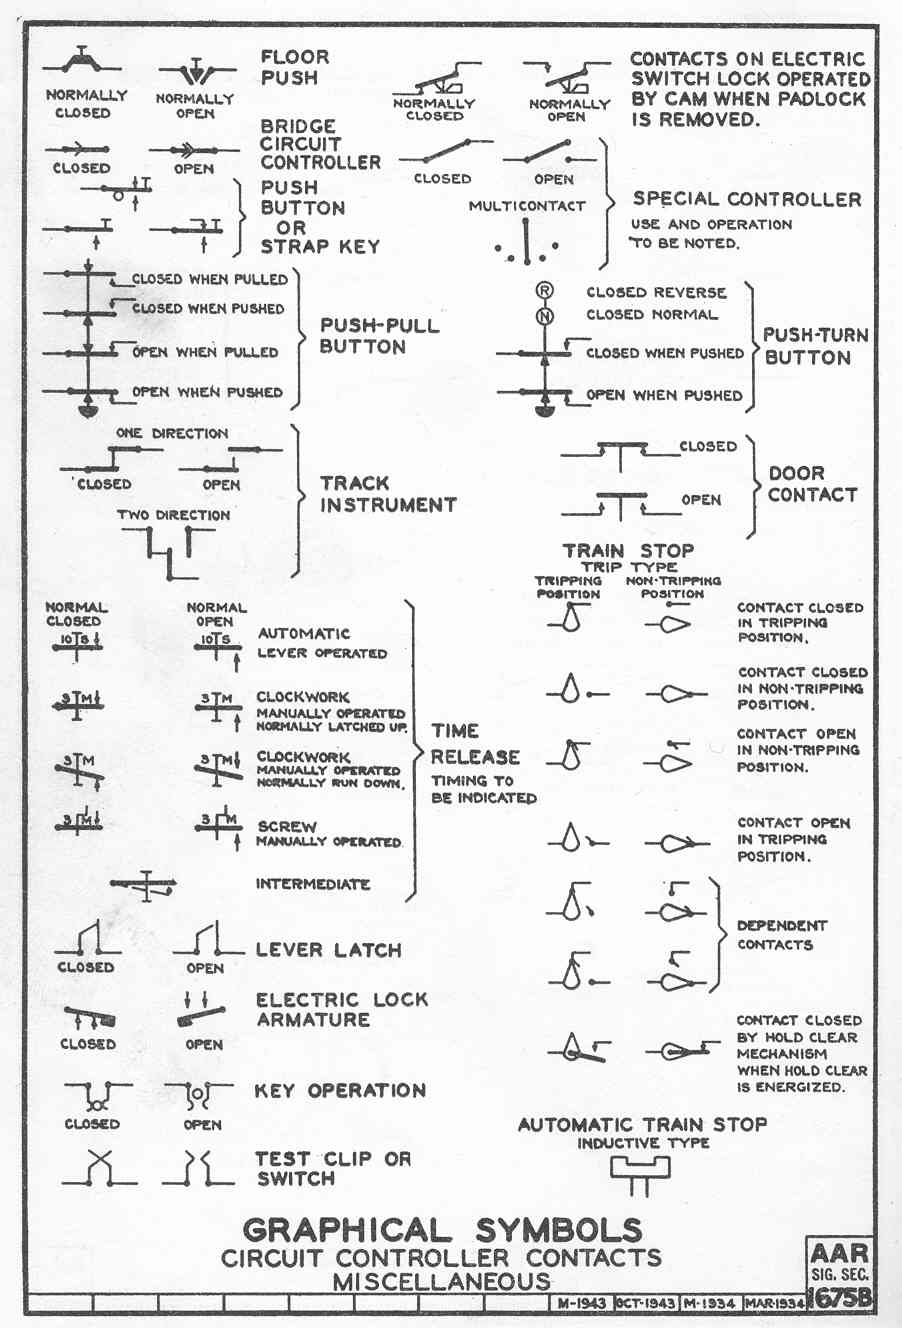 Circuit Nomenclature Symbols Us Electrical Wiring